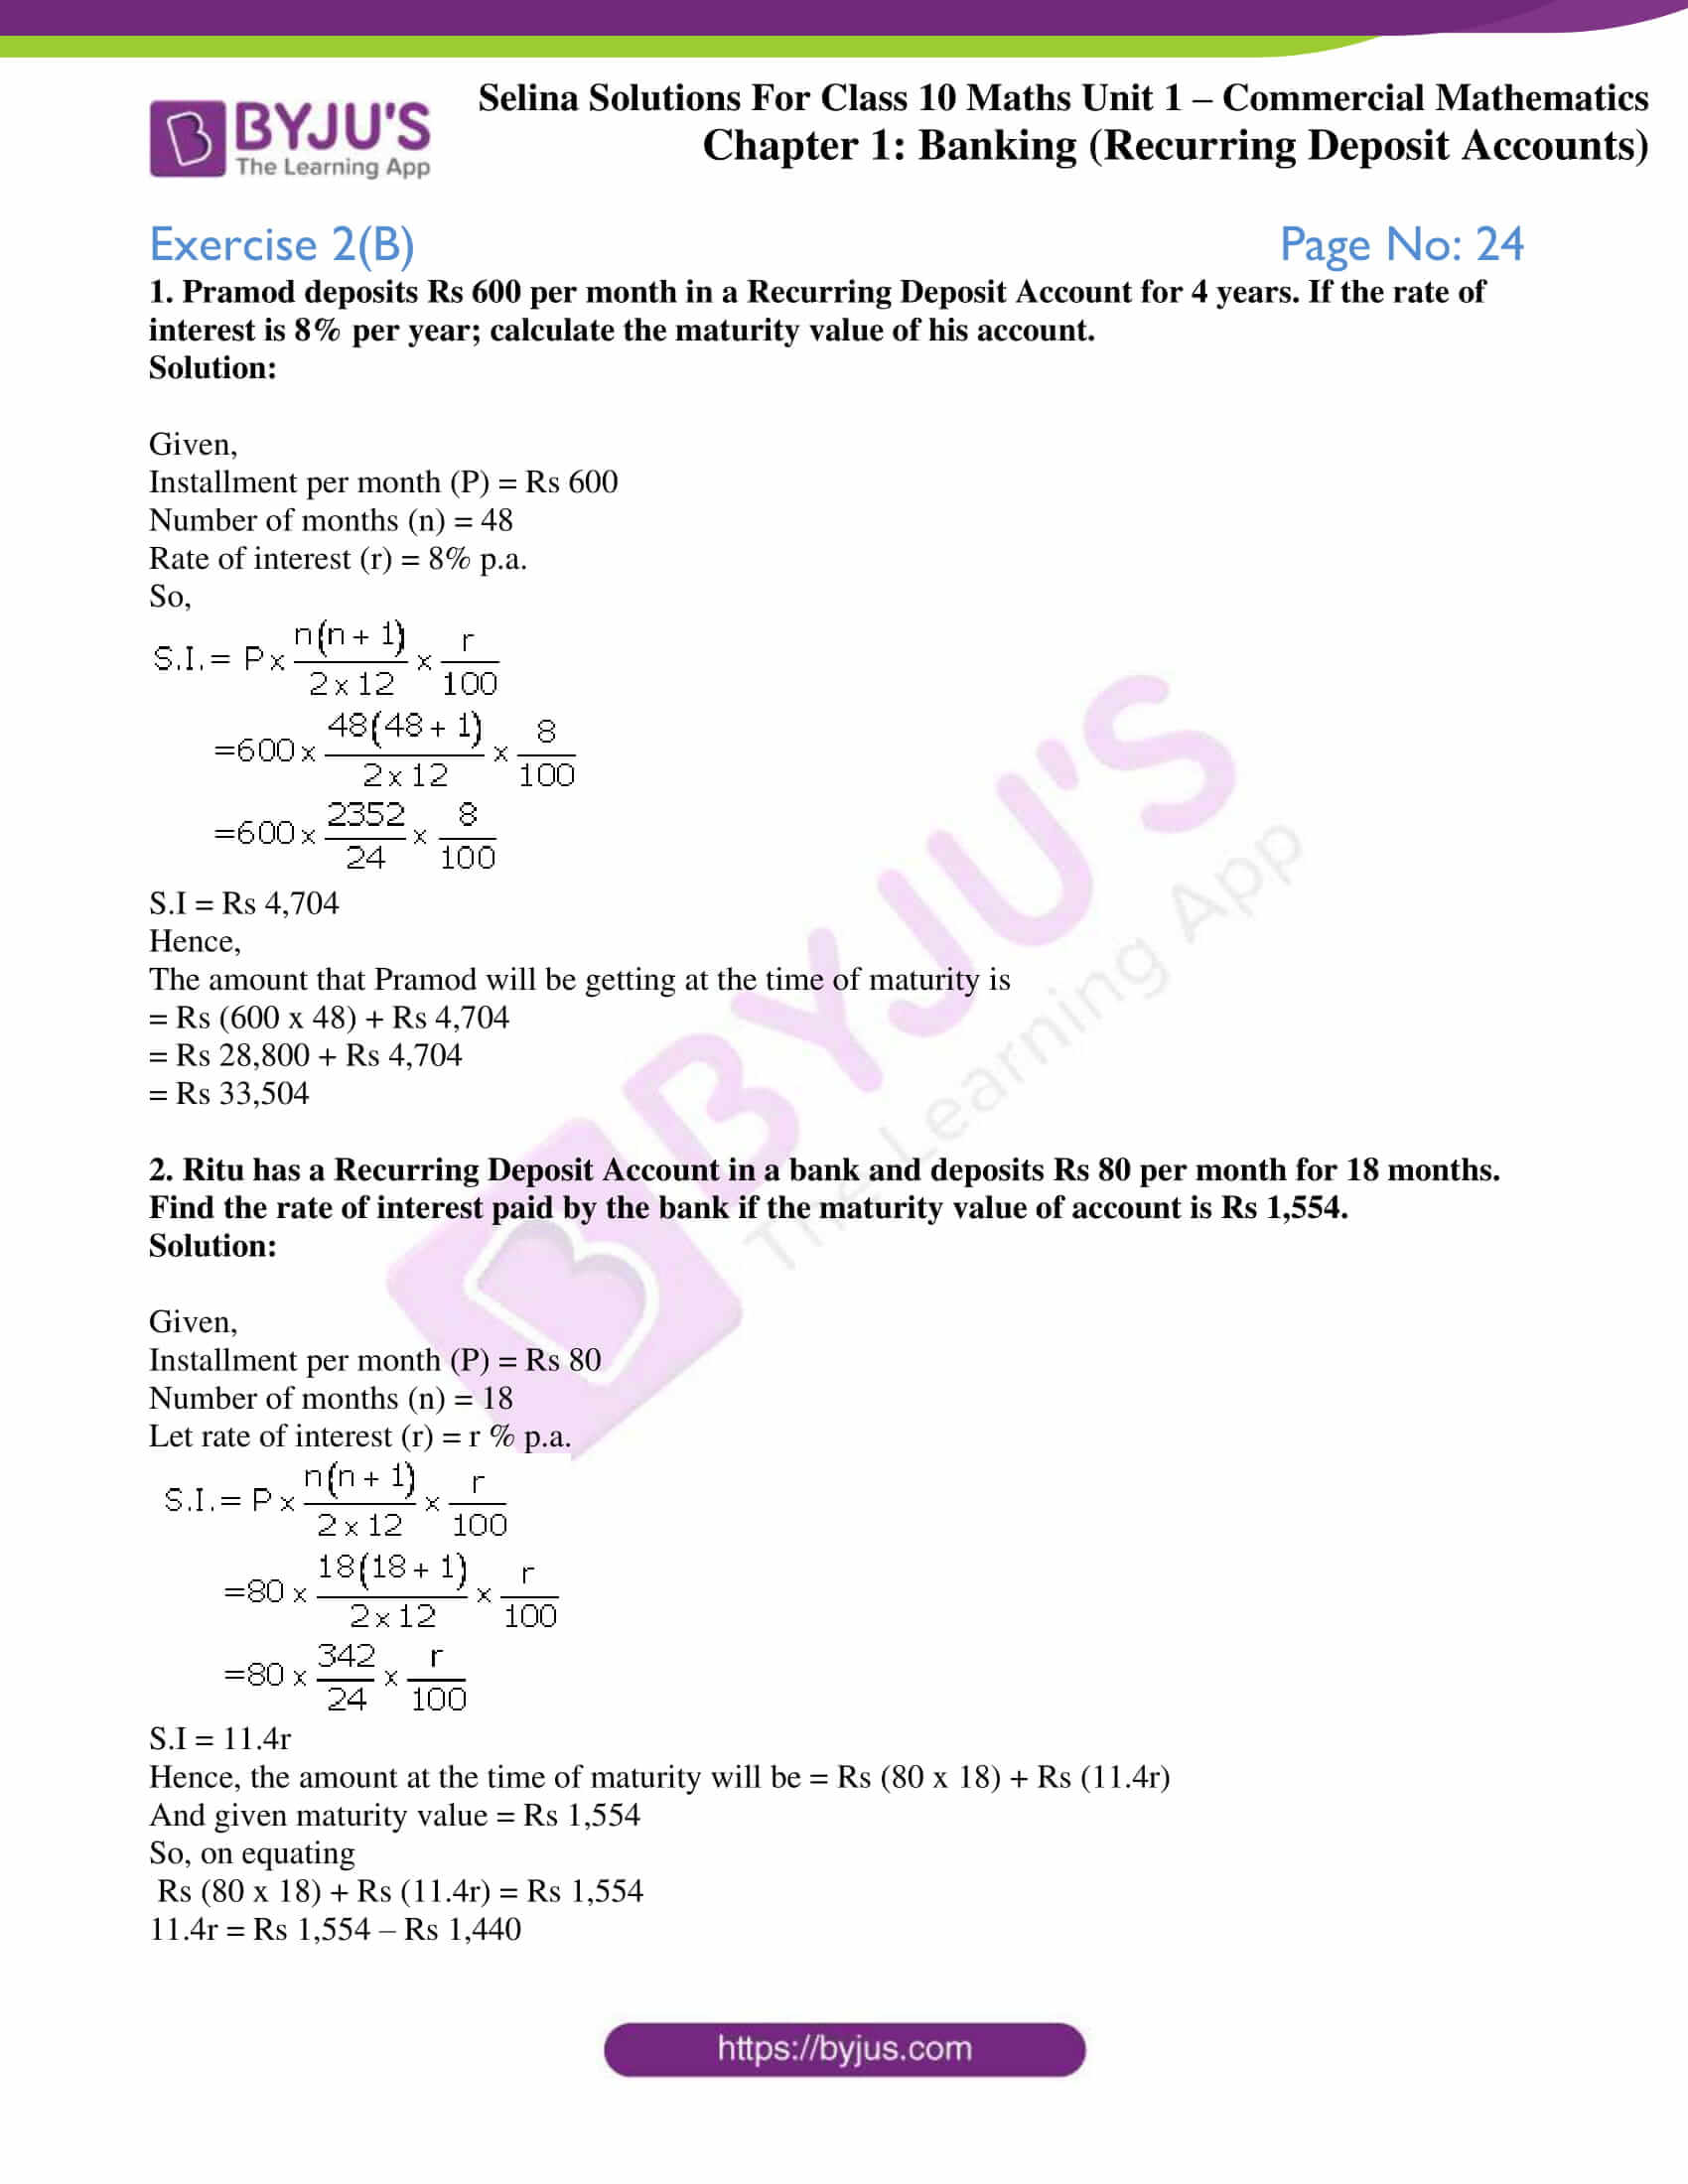 selina solution concise maths class 10 chapter 2 ex b 1